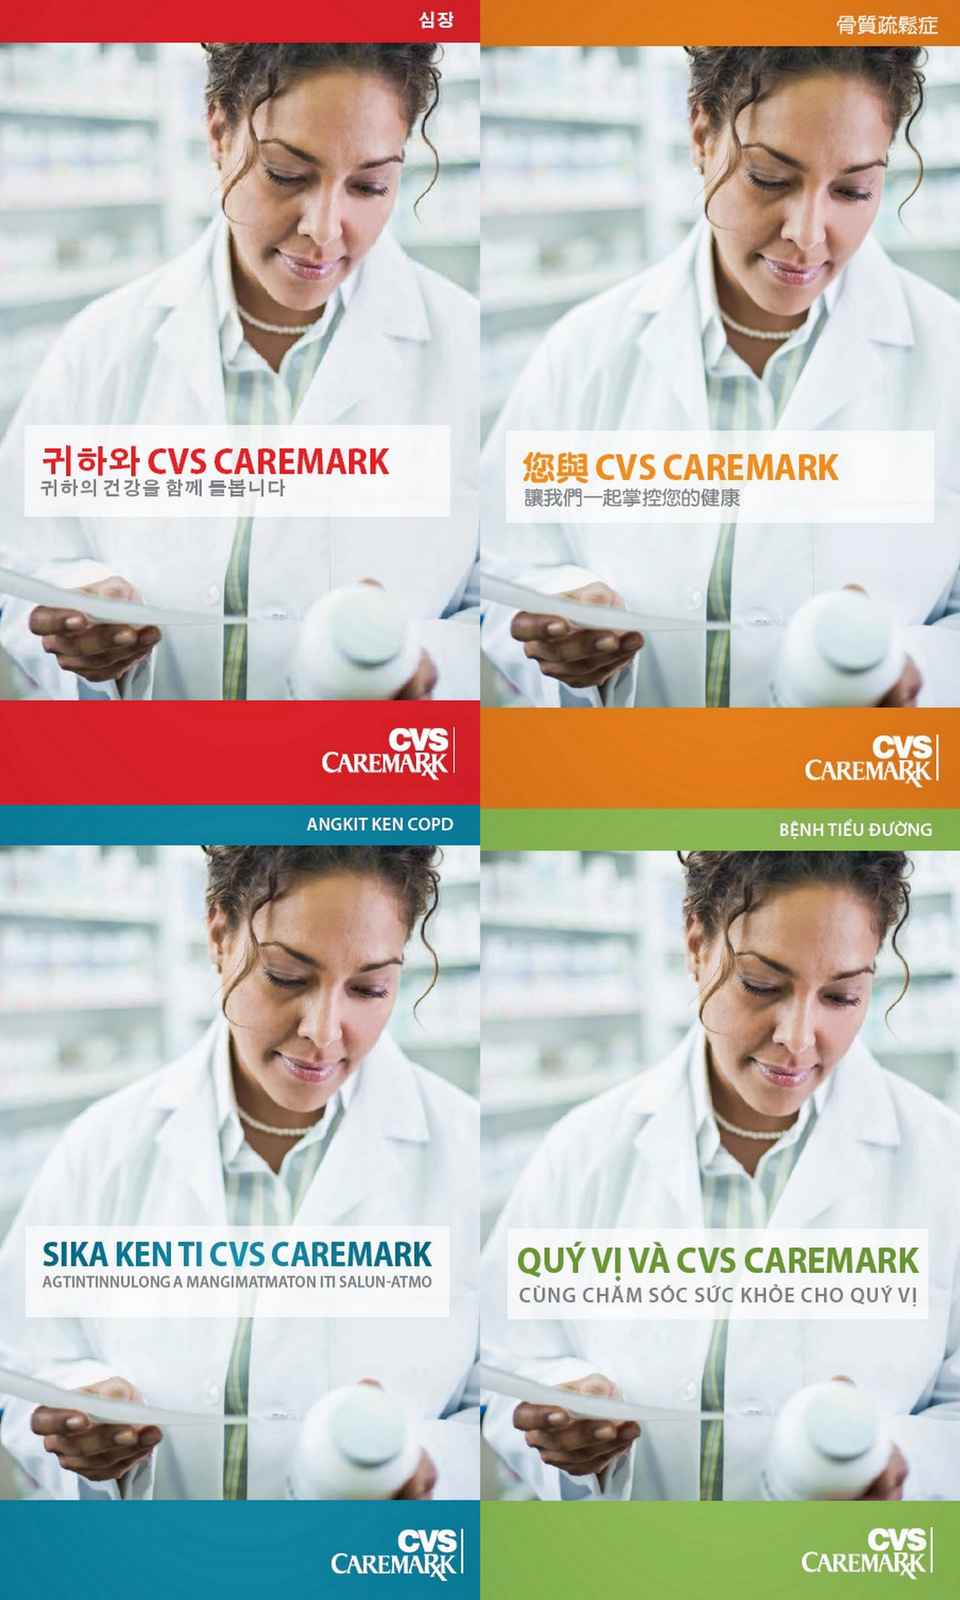 Four translations of a CVS Caremark pamphlet cover